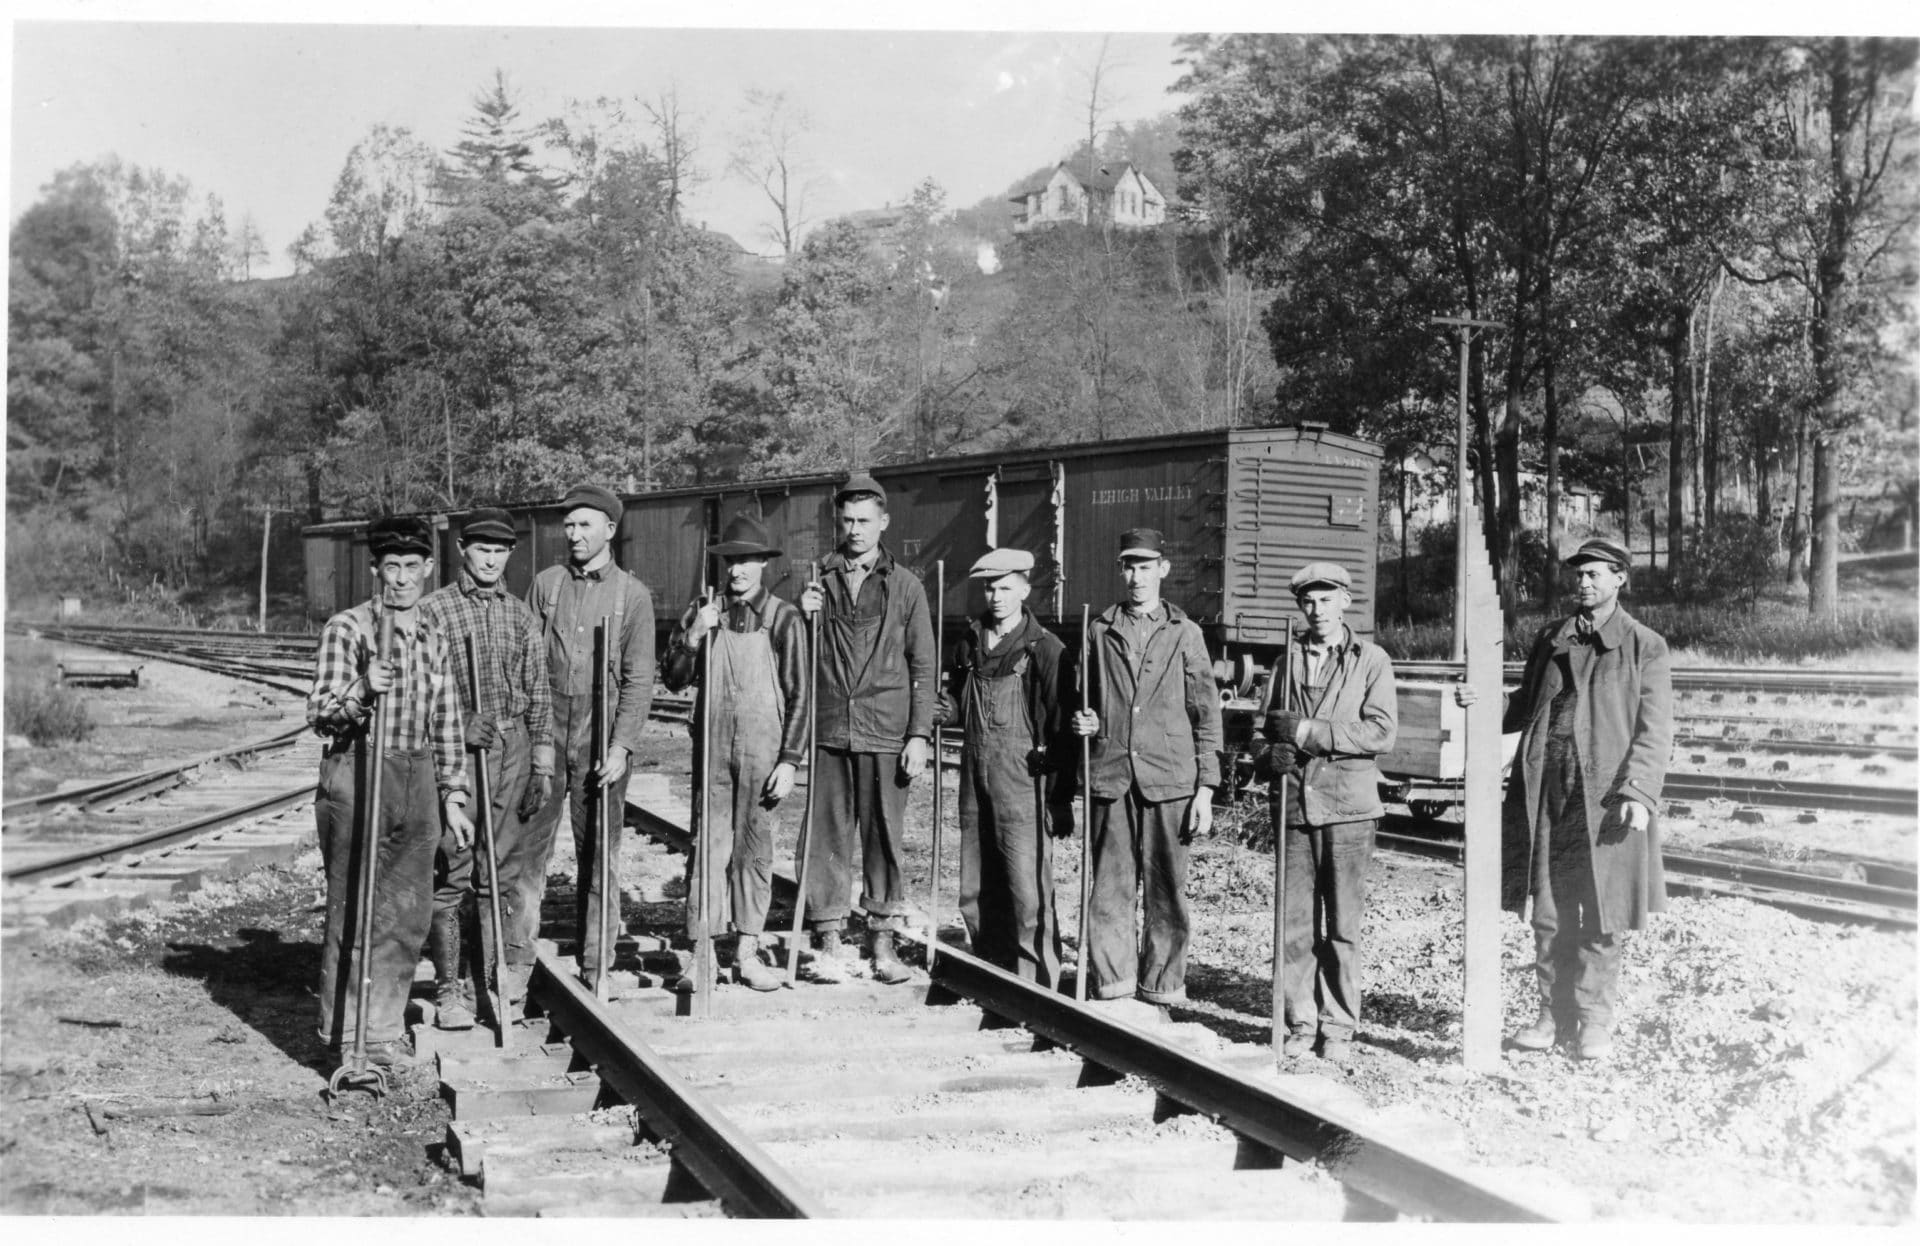 historic photo of railroad workers near Hendricks in 1923